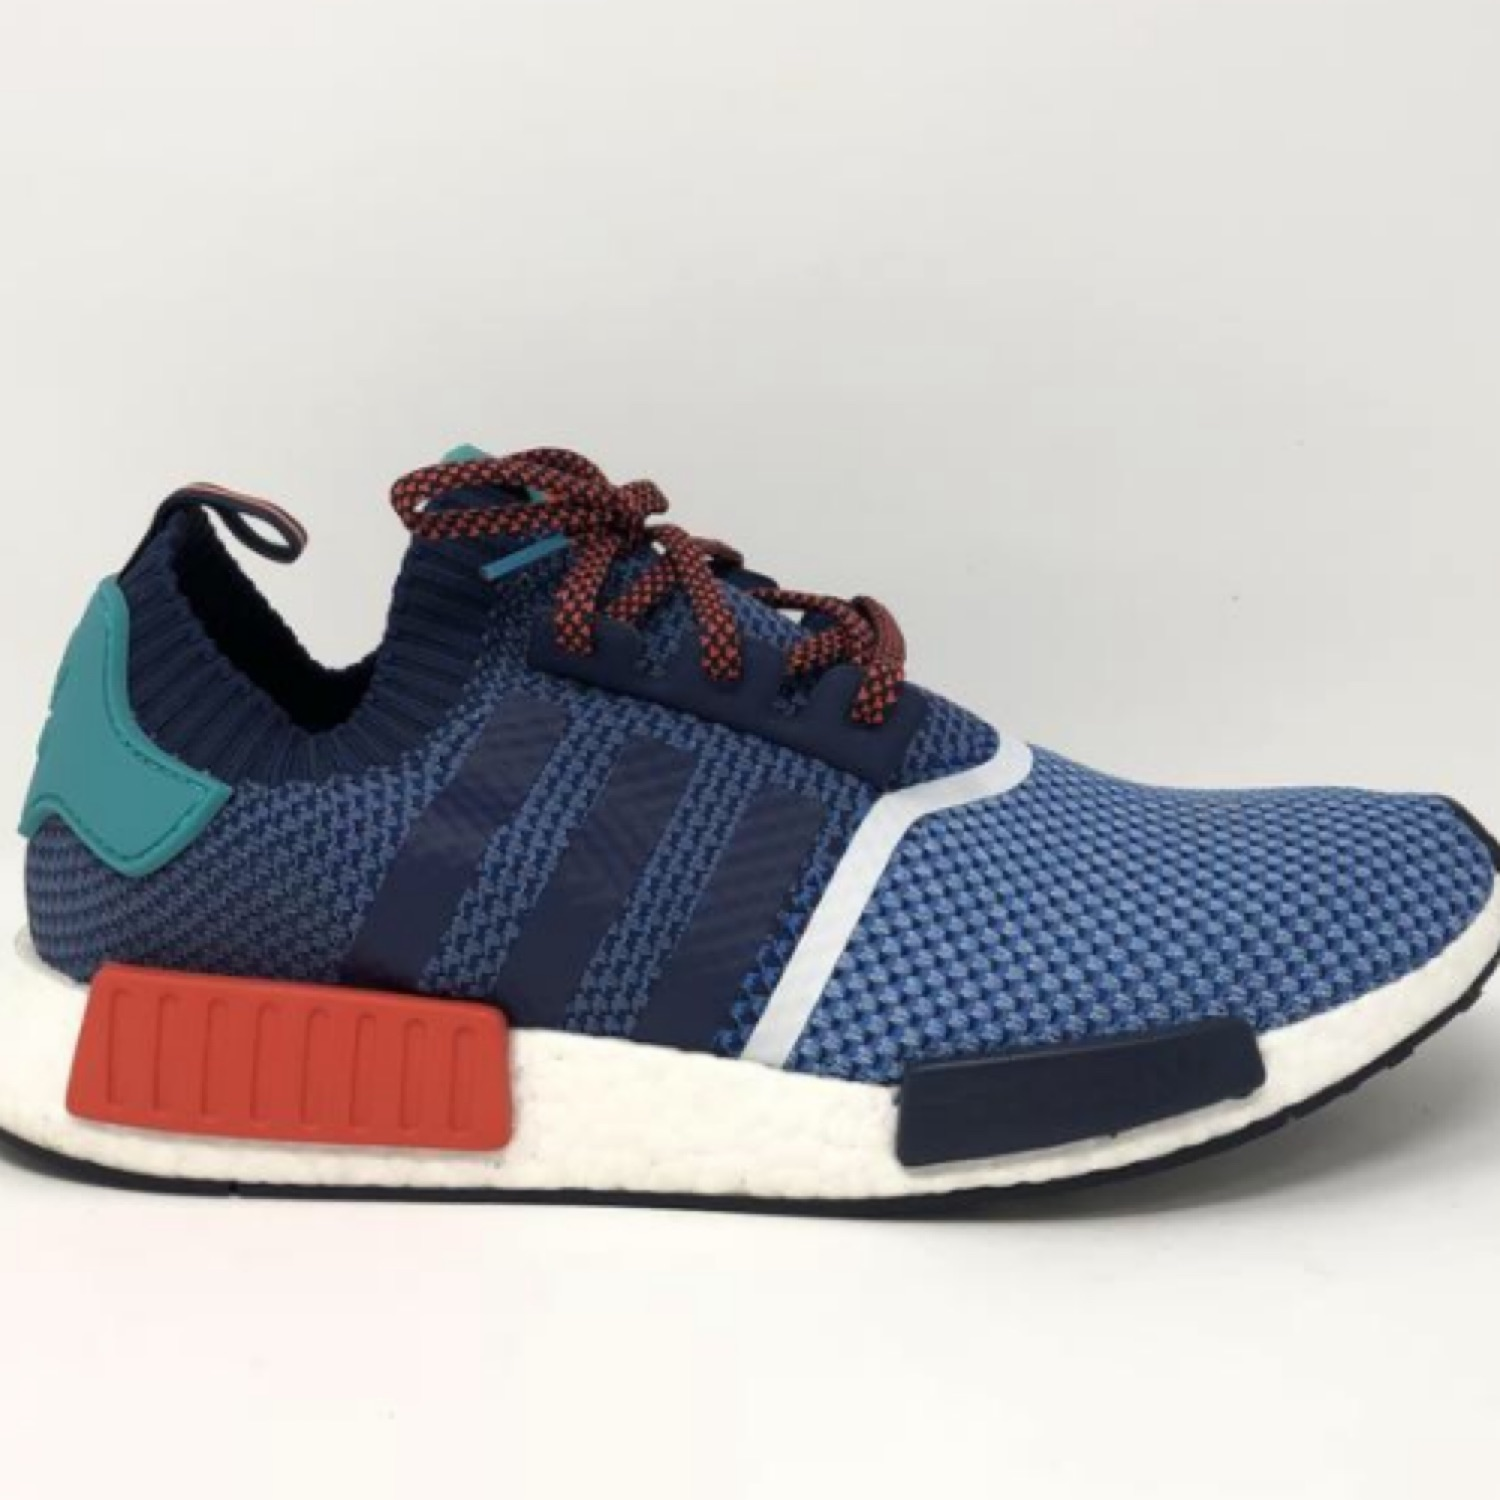 finest selection aa345 08cd2 Nmd R1 Pk Packer